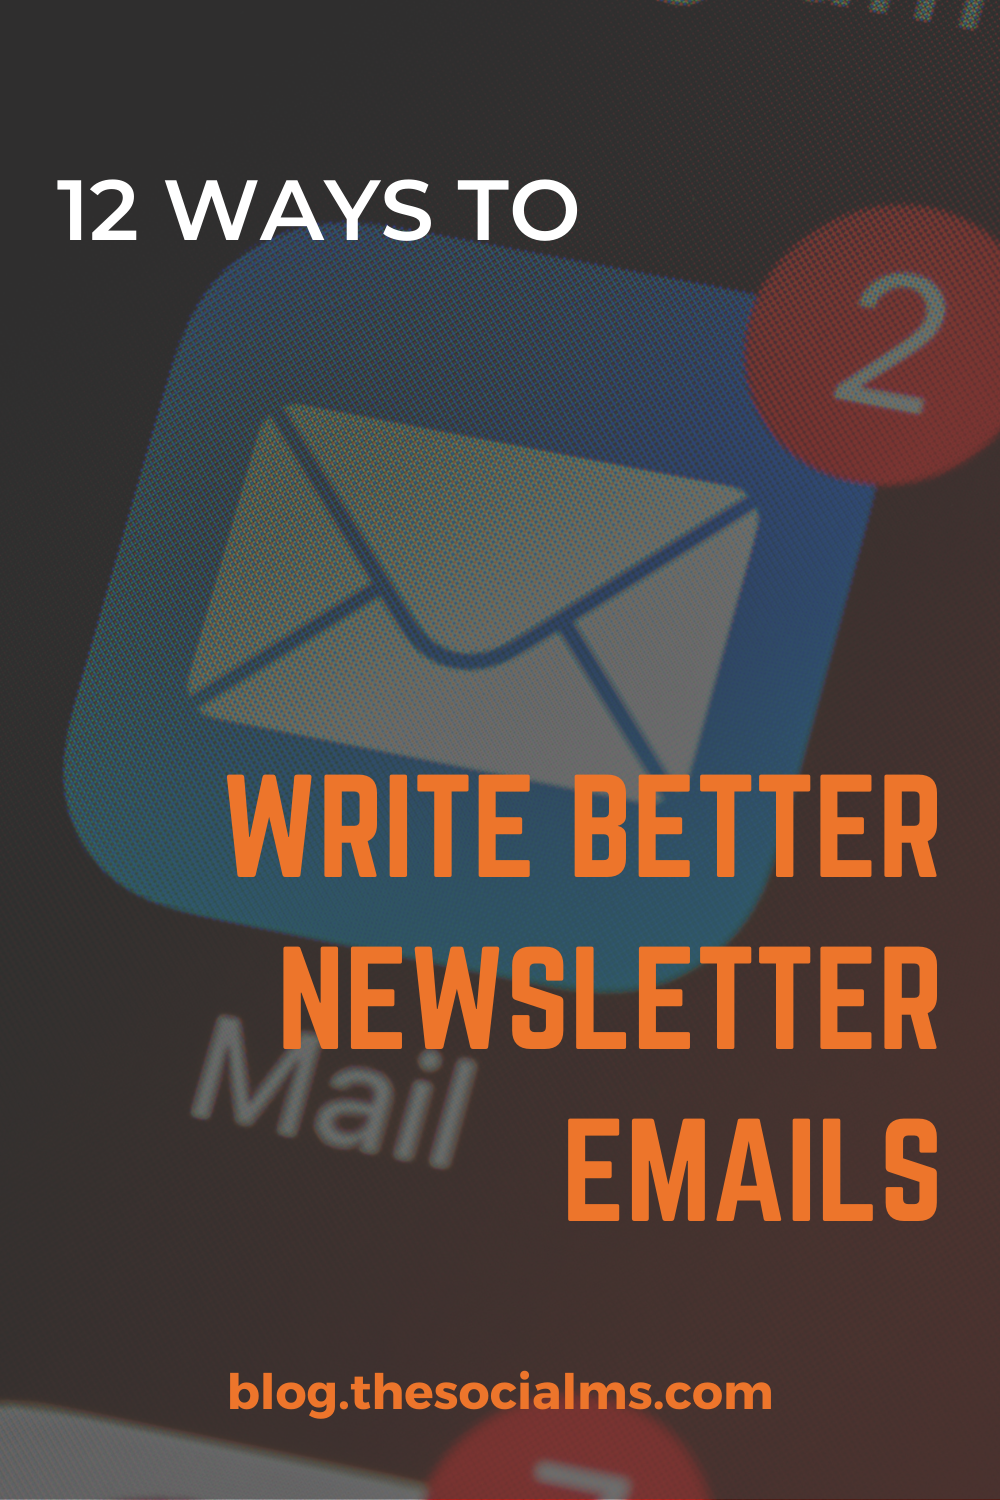 """How to write better newsletter emails is a pinnacle of online marketing. """"The money is in the list!"""" is one of the most often repeated mantras of bloggers and marketers. how do you write good email newsletters? What makes a good newsletter? How can you convert more people with every email? #emailmarketing #salesfunnel #newsletter #emailmarketingtips"""